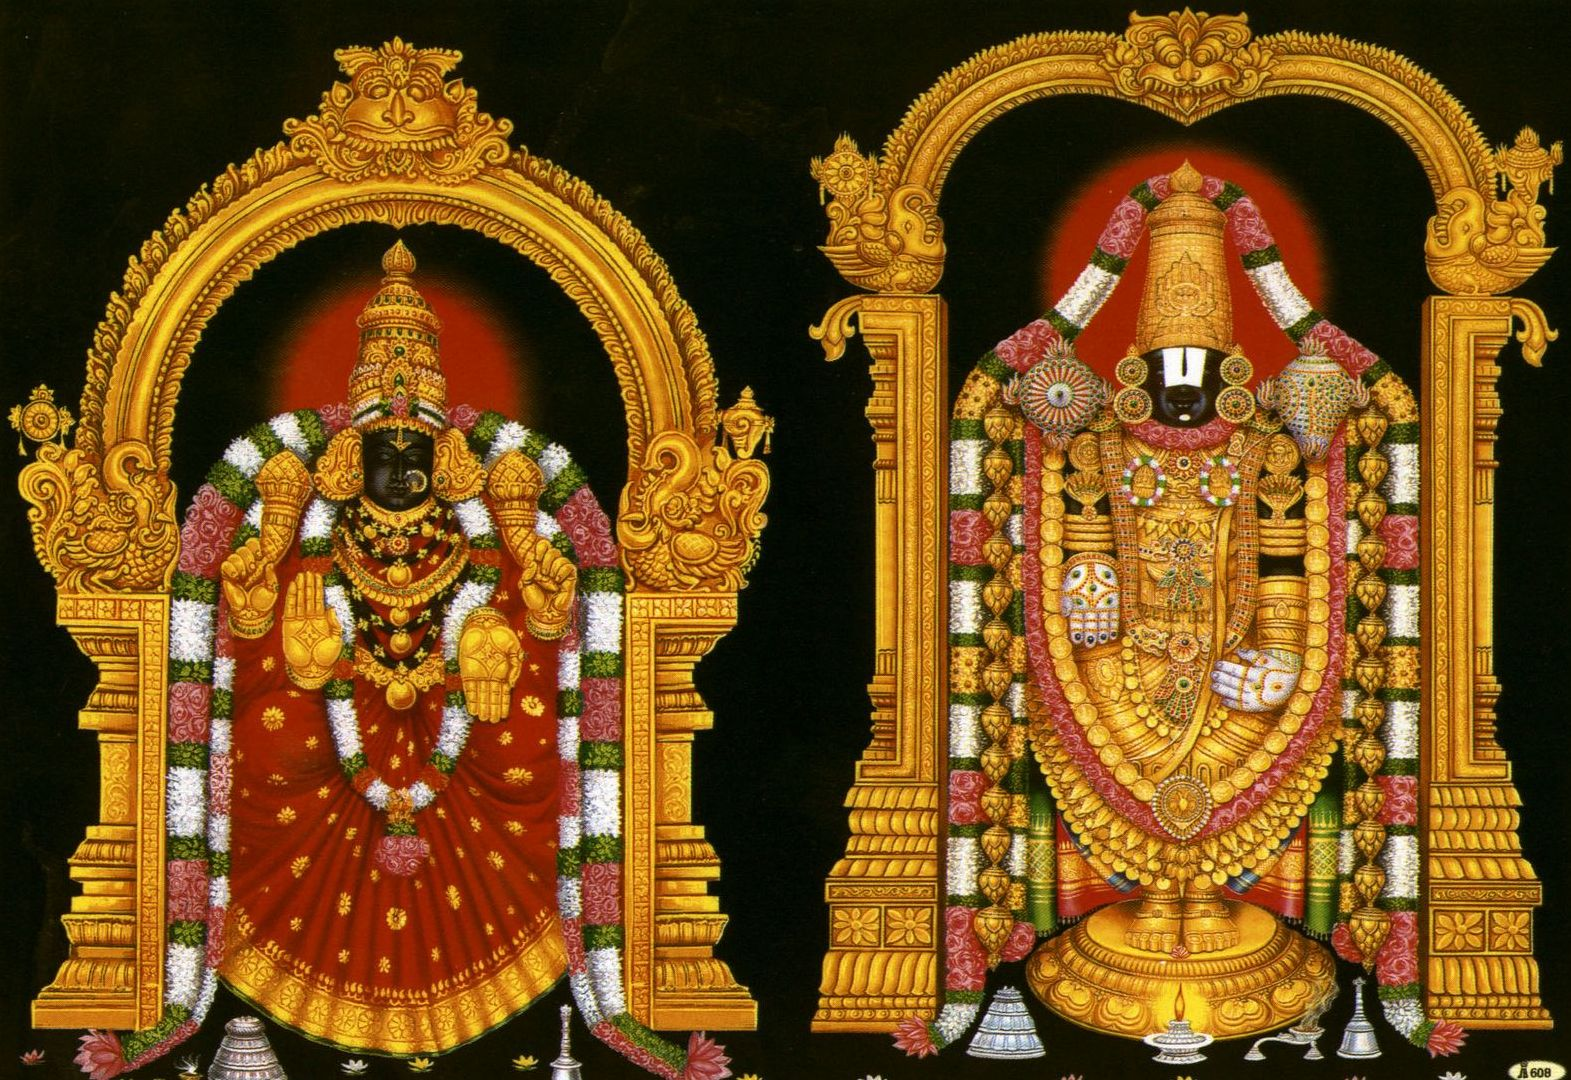 Venkateswara Temple is a landmark Vaishnavite temple situated in the hill town of Tirumala at Tirupati in Chittoor district of Andhra Pradesh, India. The Temple is dedicated to Lord Sri Venkateswara, an incarnation of Vishnu, who is believed to have appeared here to save mankind from trials and troubles of Kali Yuga. Hence the place has also got the name Kaliyuga Vaikuntham and Lord here is referred to as Kaliyuga Prathyaksha Daivam. The temple is also known by other names like Tirumala Temple, Tirupati Temple, Tirupati Balaji Temple. Lord Venkateswara is known by many other names: Balaji, Govinda, and Srinivasa  Sai Tours and Travels organises customised Tour Packages for its customers. For  More  Details  Call - 9822966760